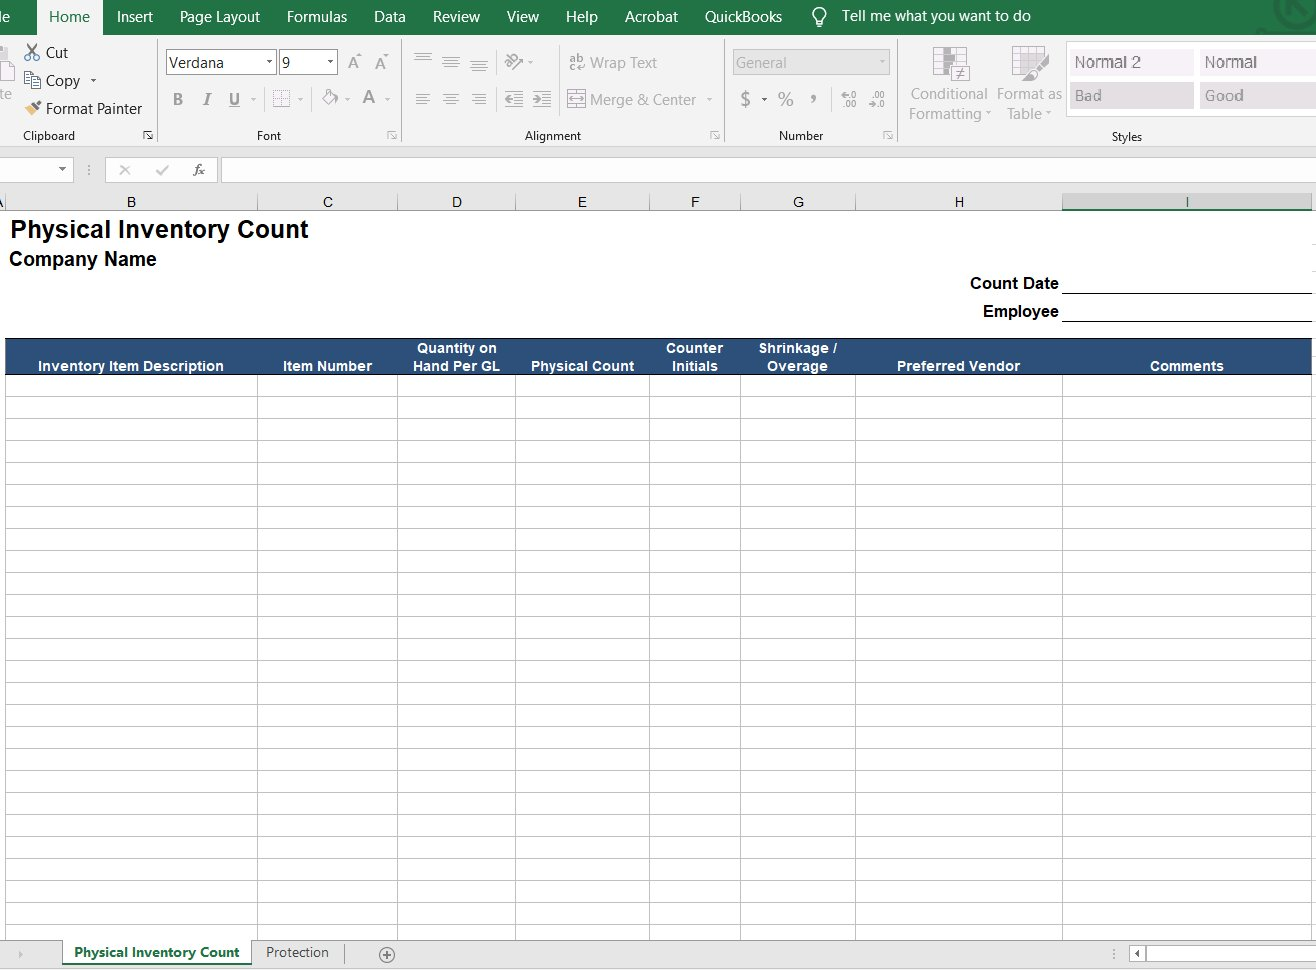 Physical Inventory County Form